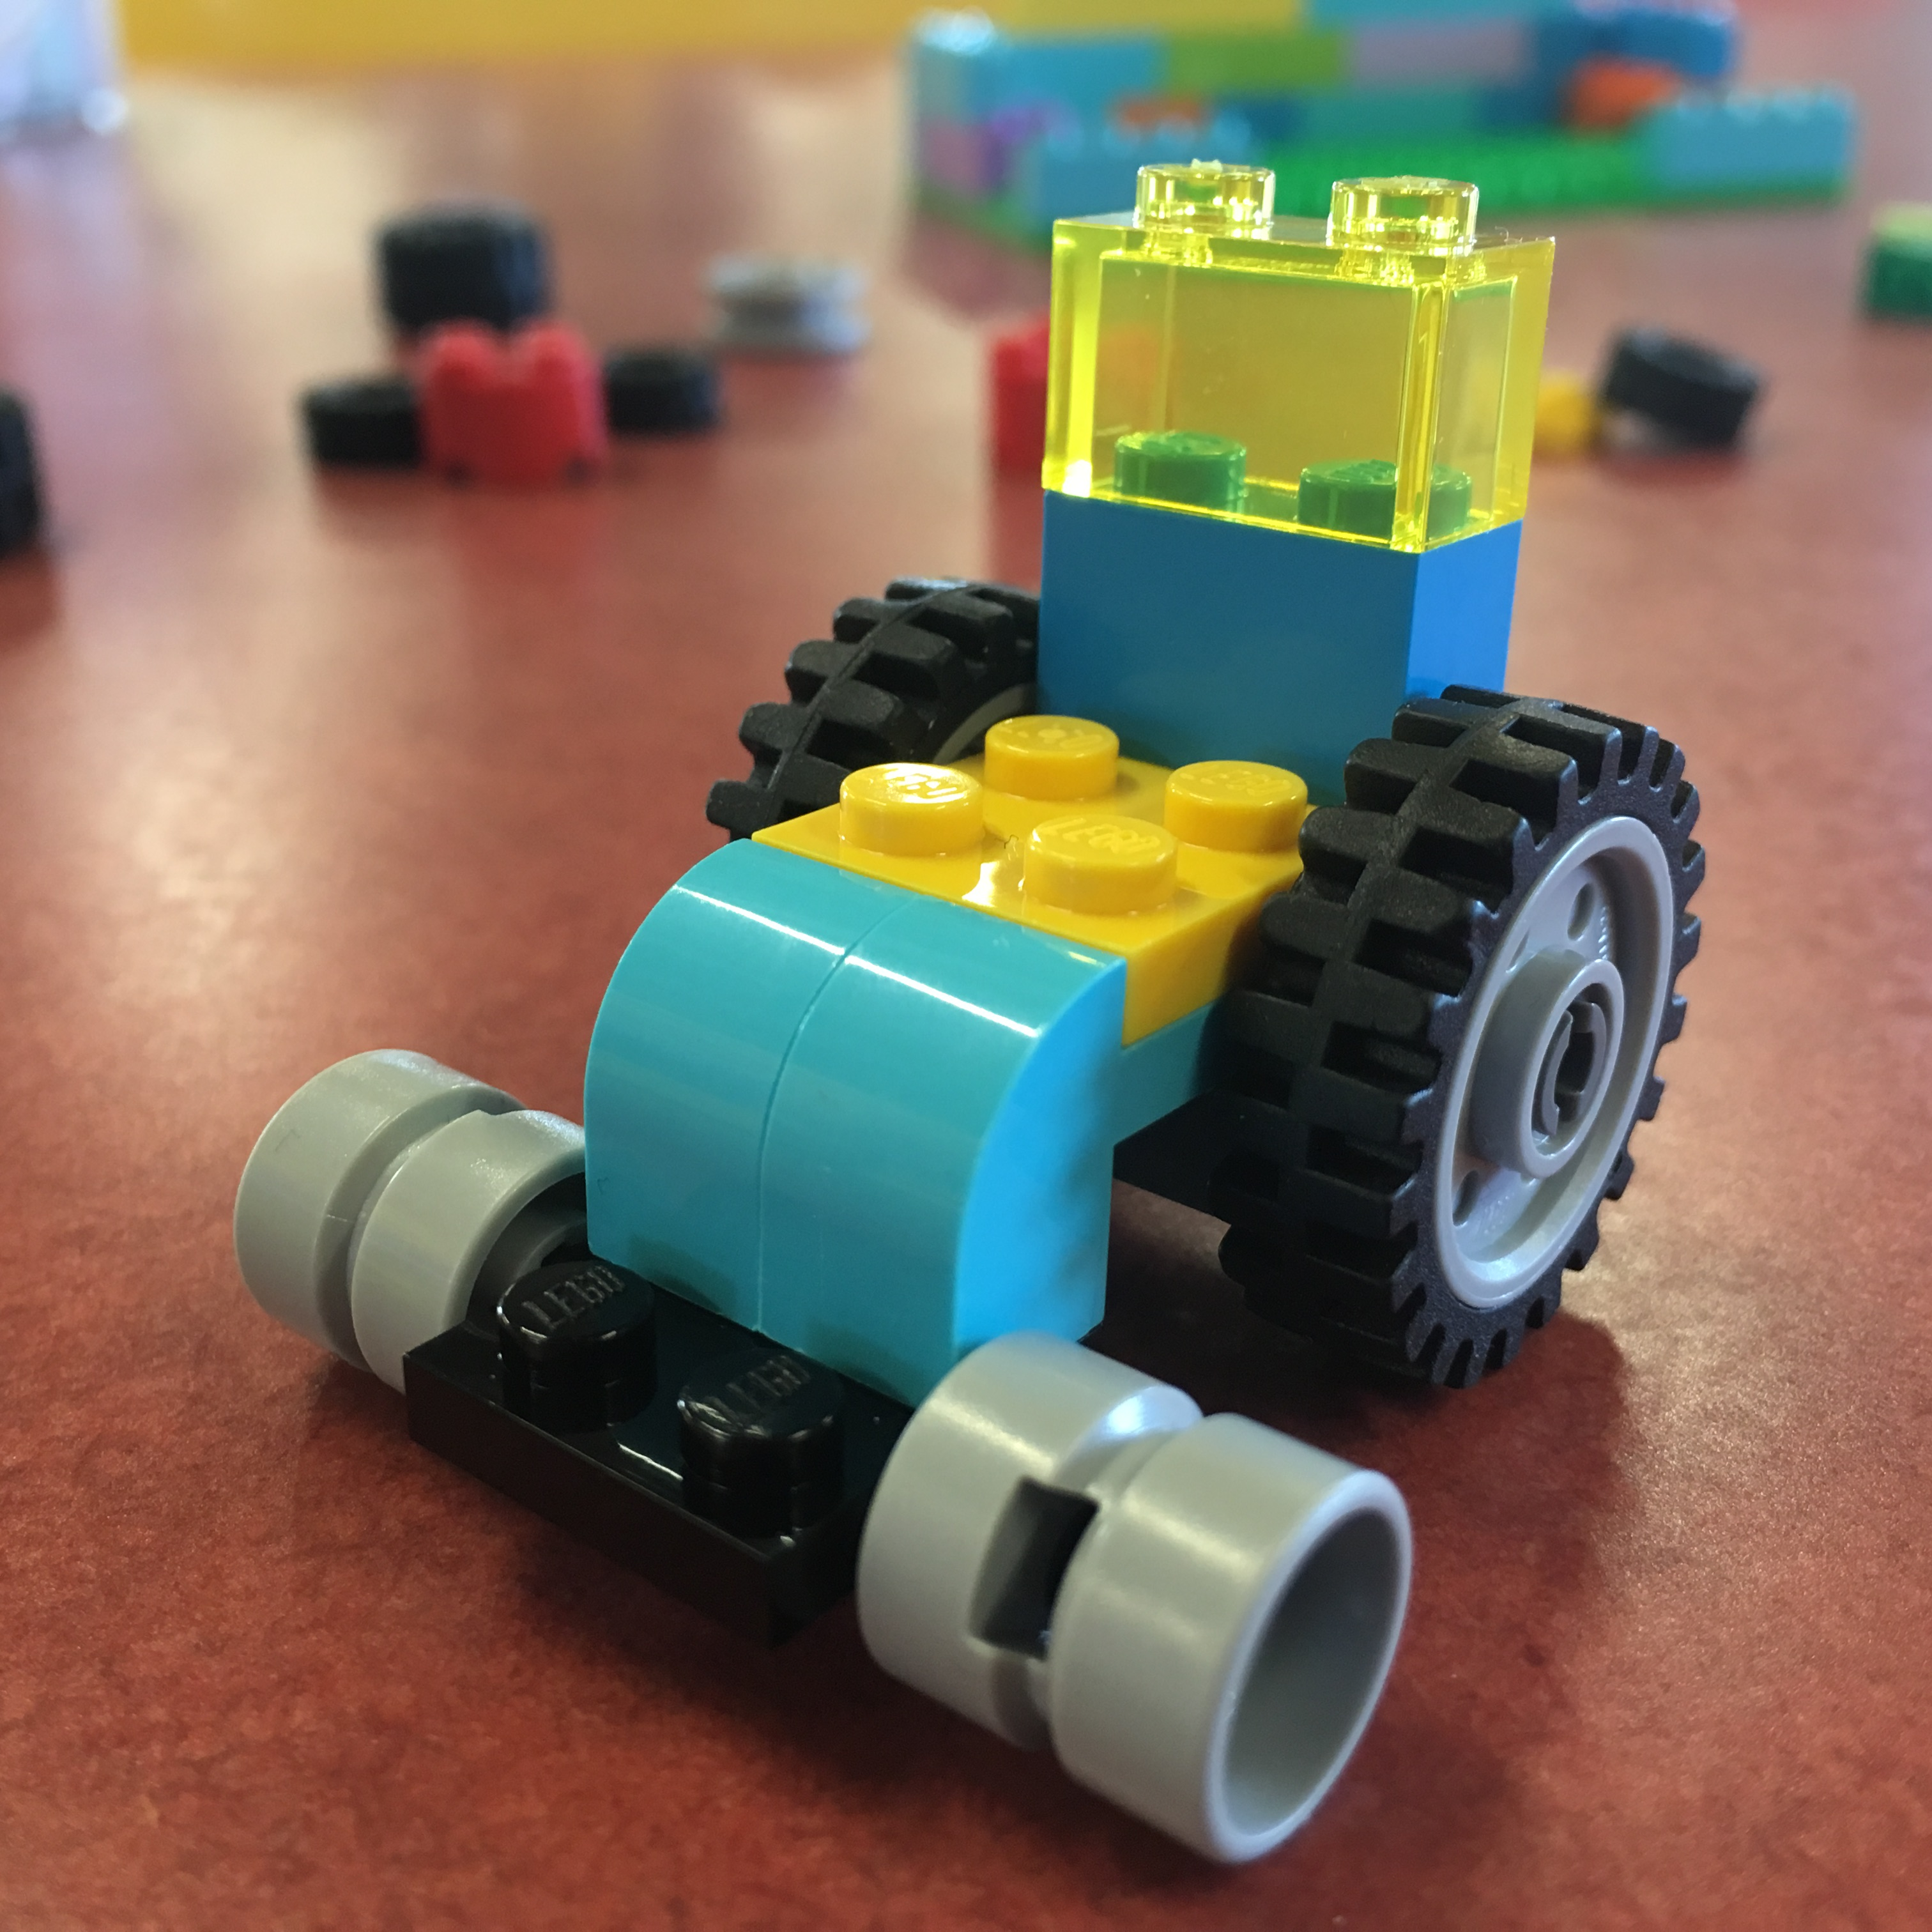 Photograph of Lego Wheelchair made by Touretteshero. It is made using colourful translucent green, baby blue, yellow and blue blocks with big jumbo wheels and wide castor wheels